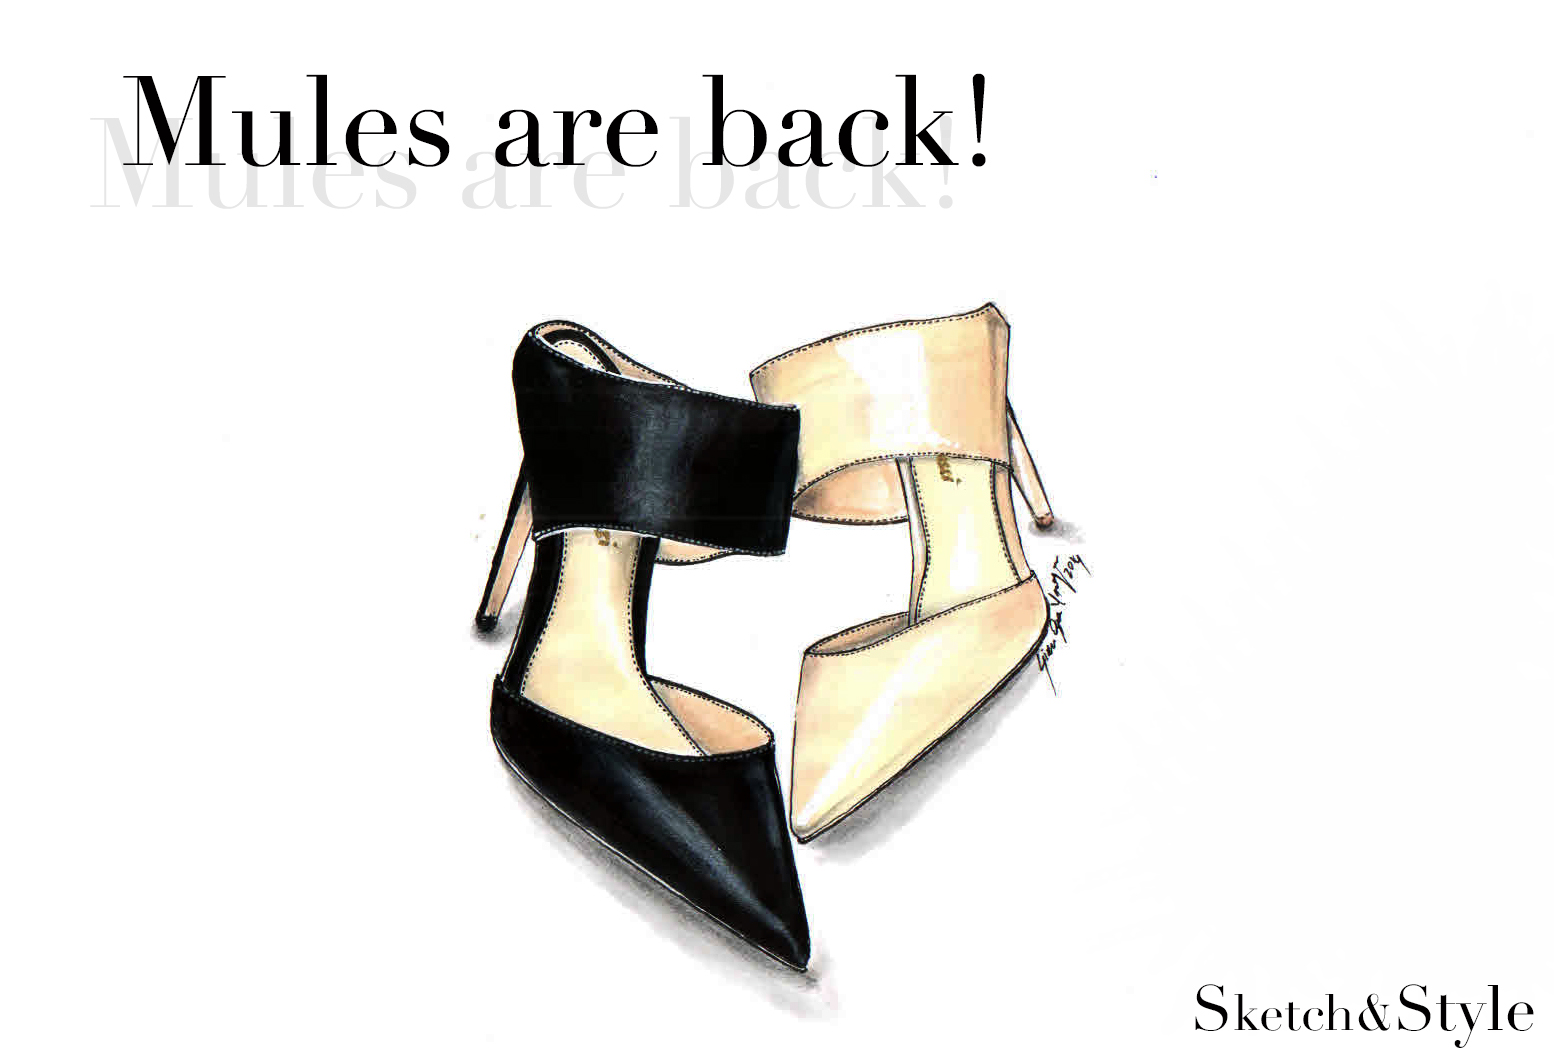 Mules are Back!